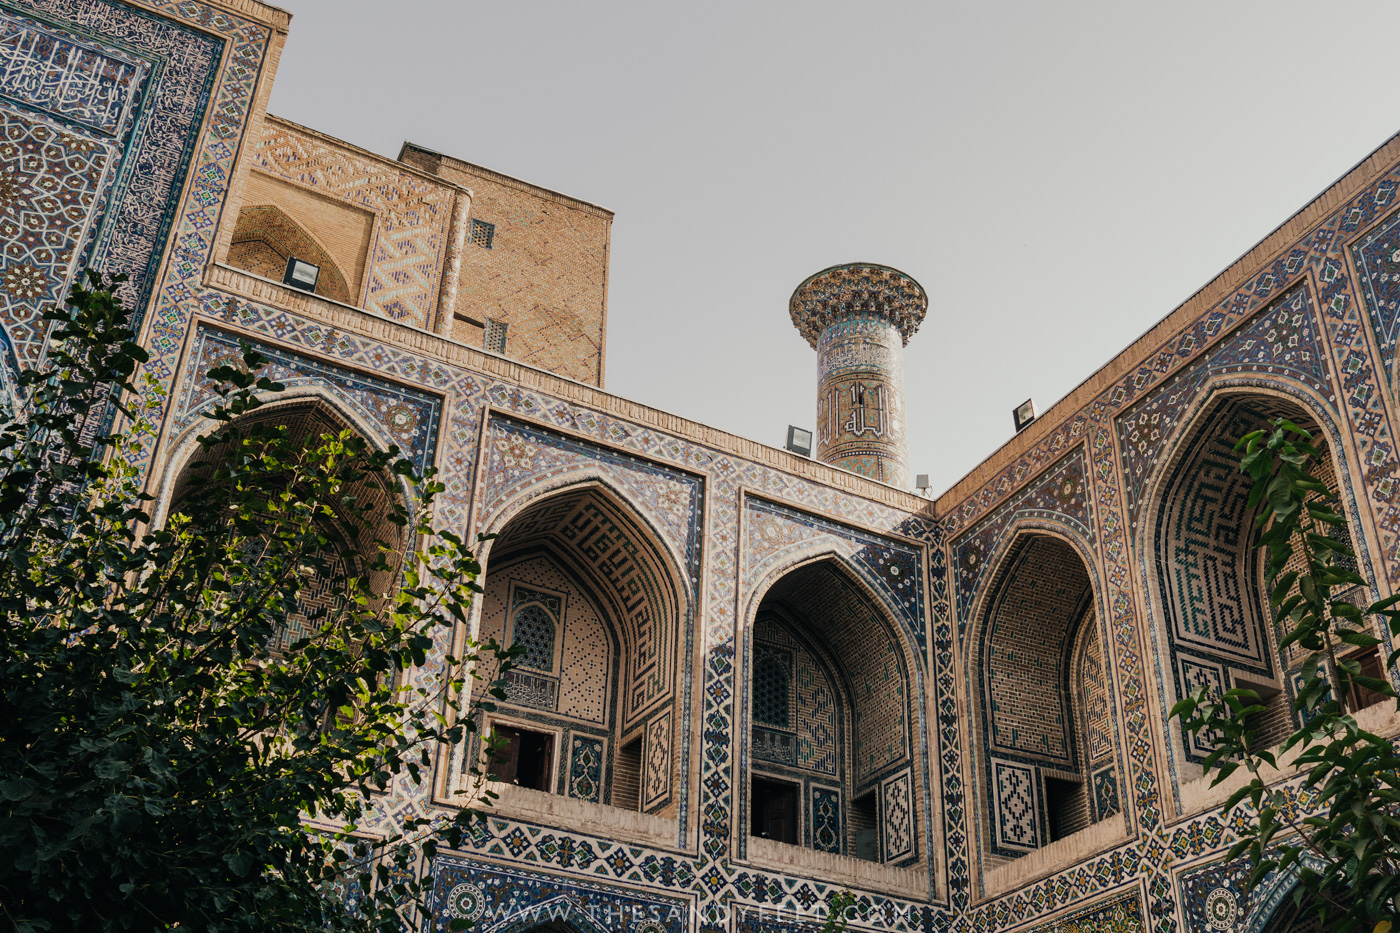 The beauty of the Registan | Samarkand Travel Guide: The Best Things To Do In Samarkand, Uzbekistan